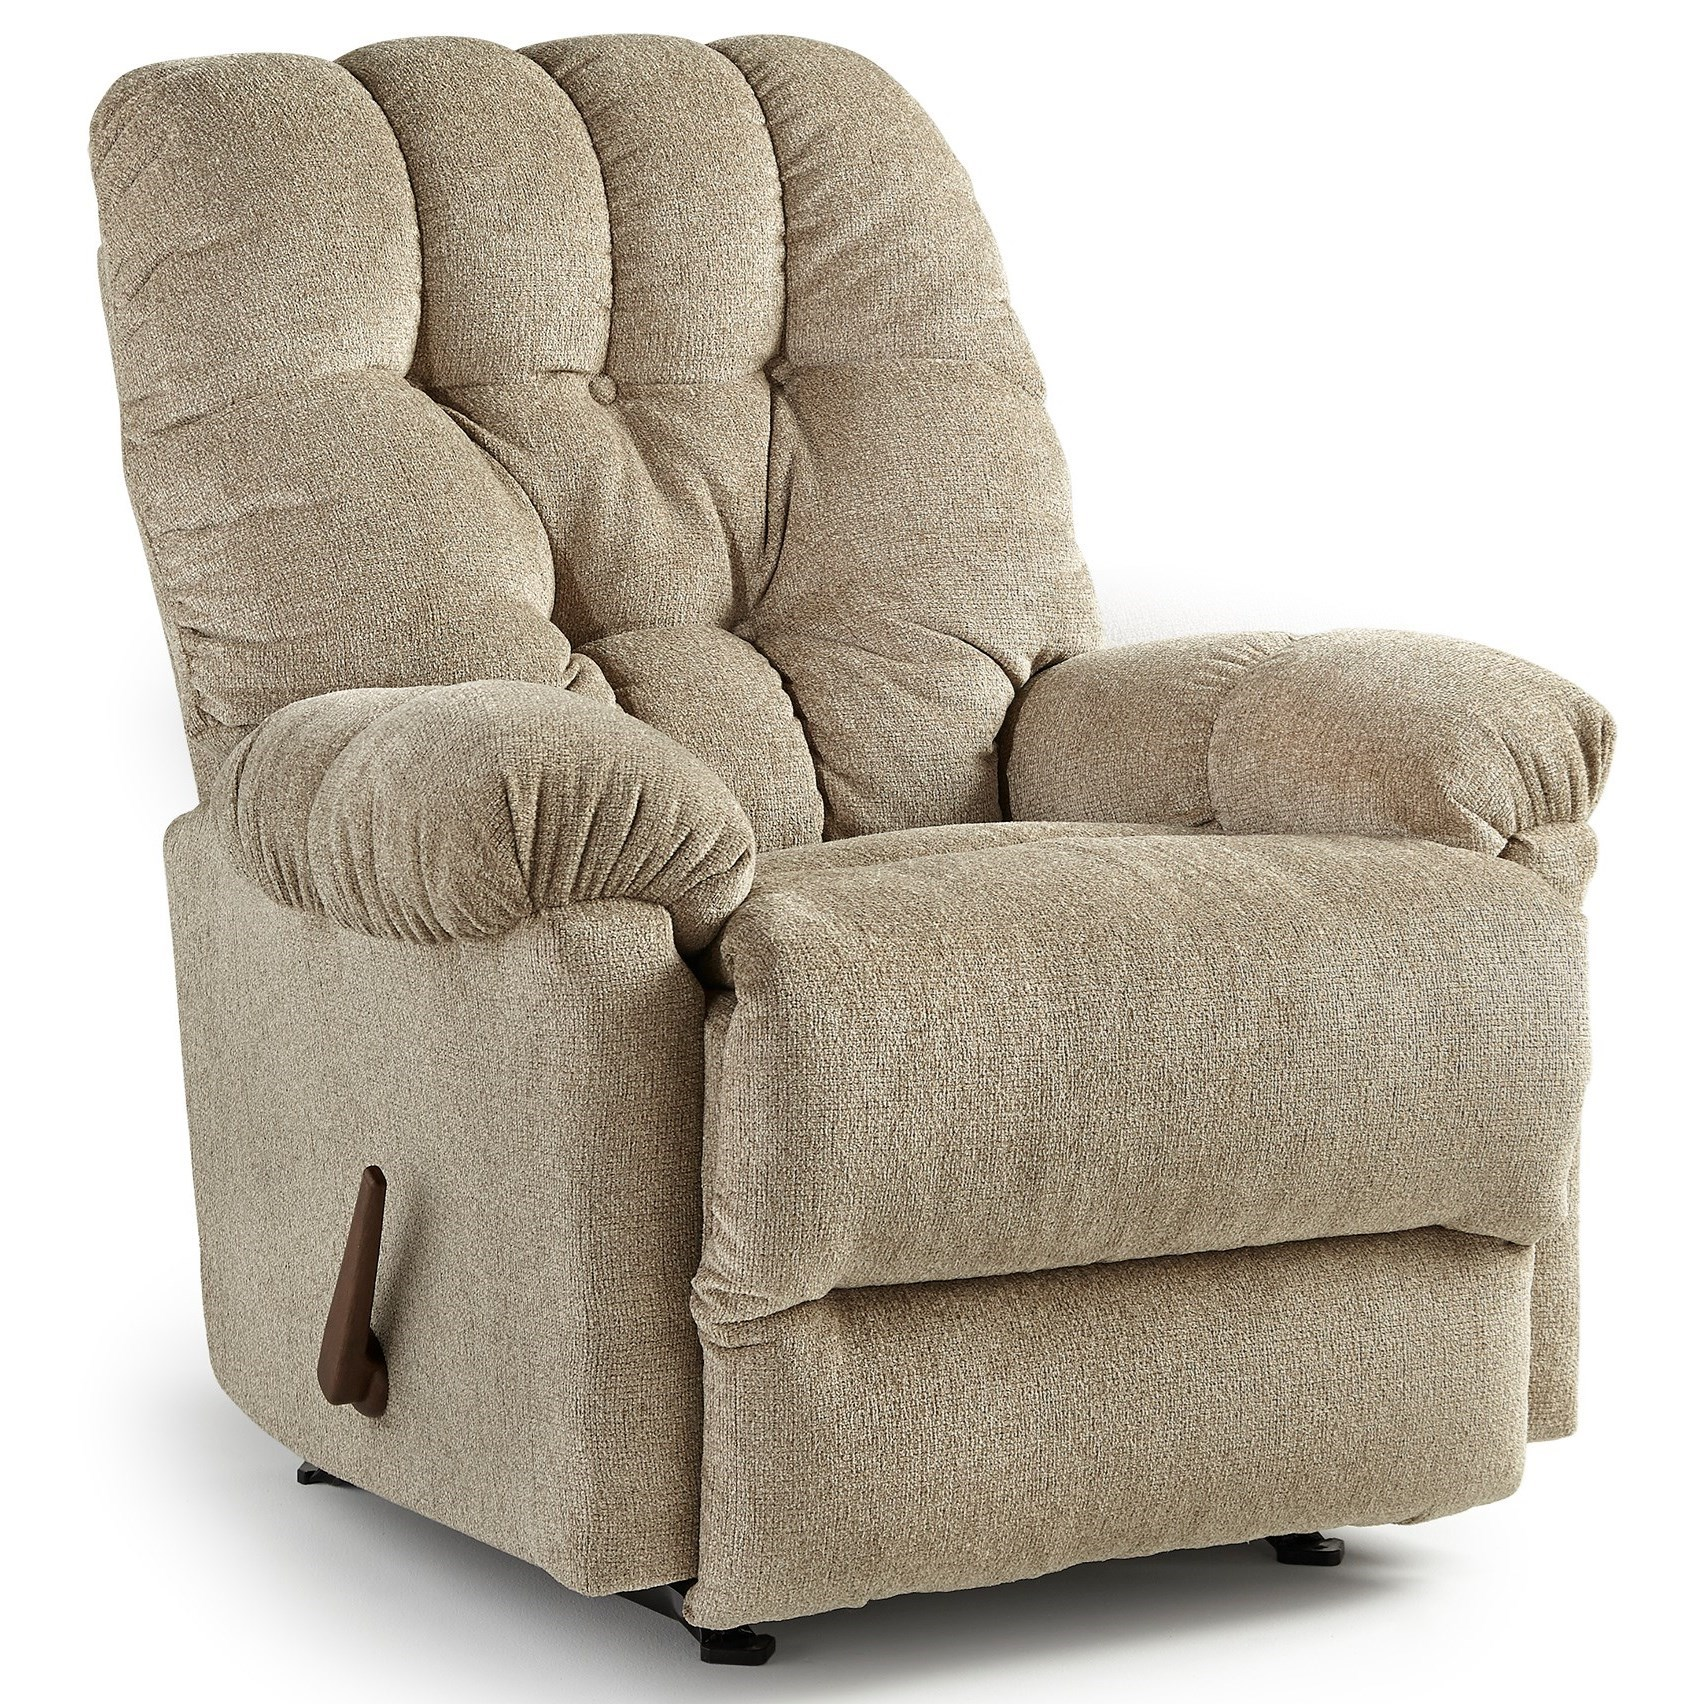 Swivel Rocker Recliner Chair Raider Raider Swivel Rocker Recliner By Best Home Furnishings At Rune S Furniture